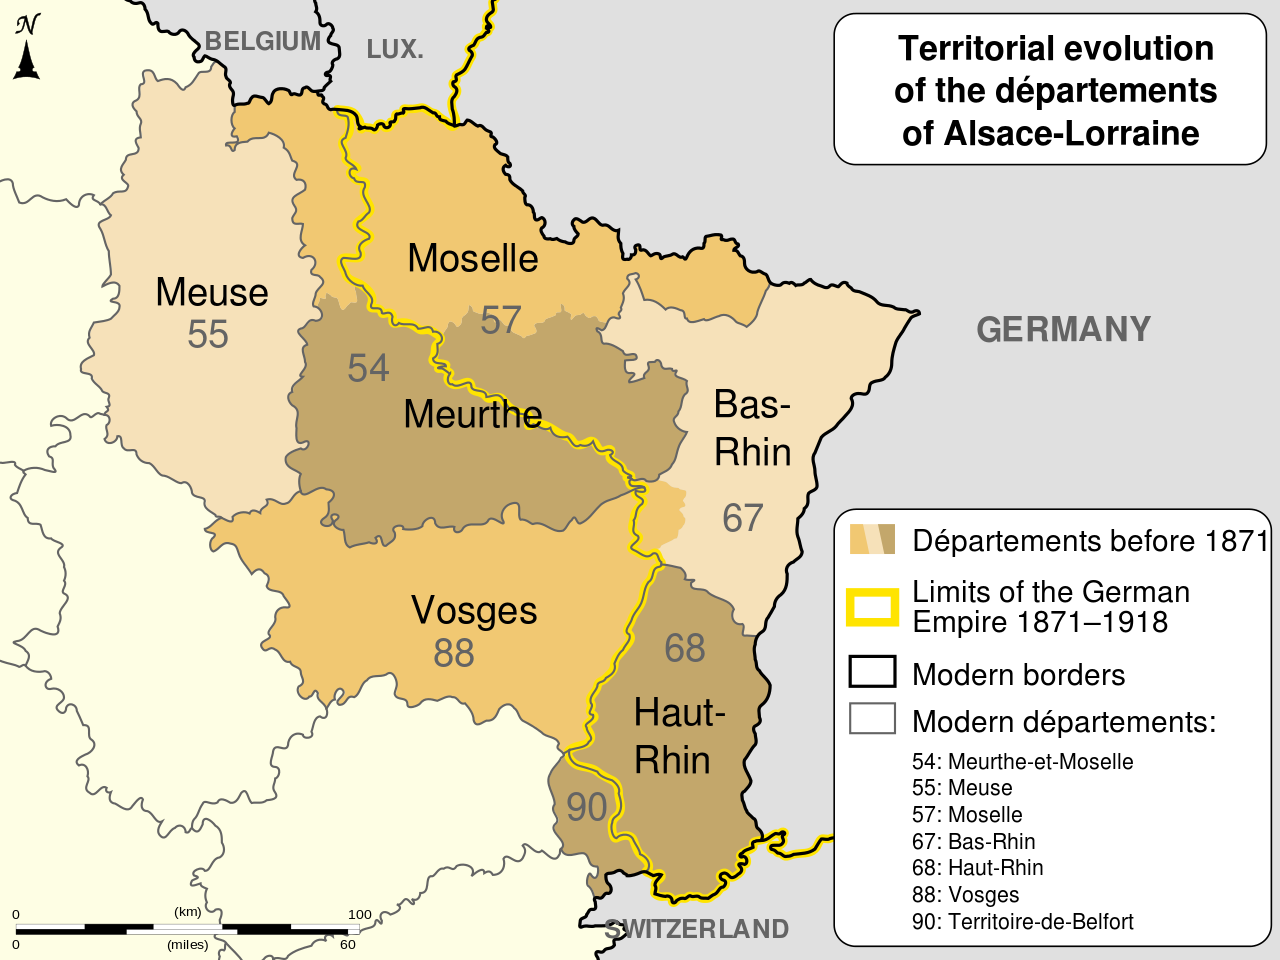 Départements of Alsace-Lorraine before and after 1871